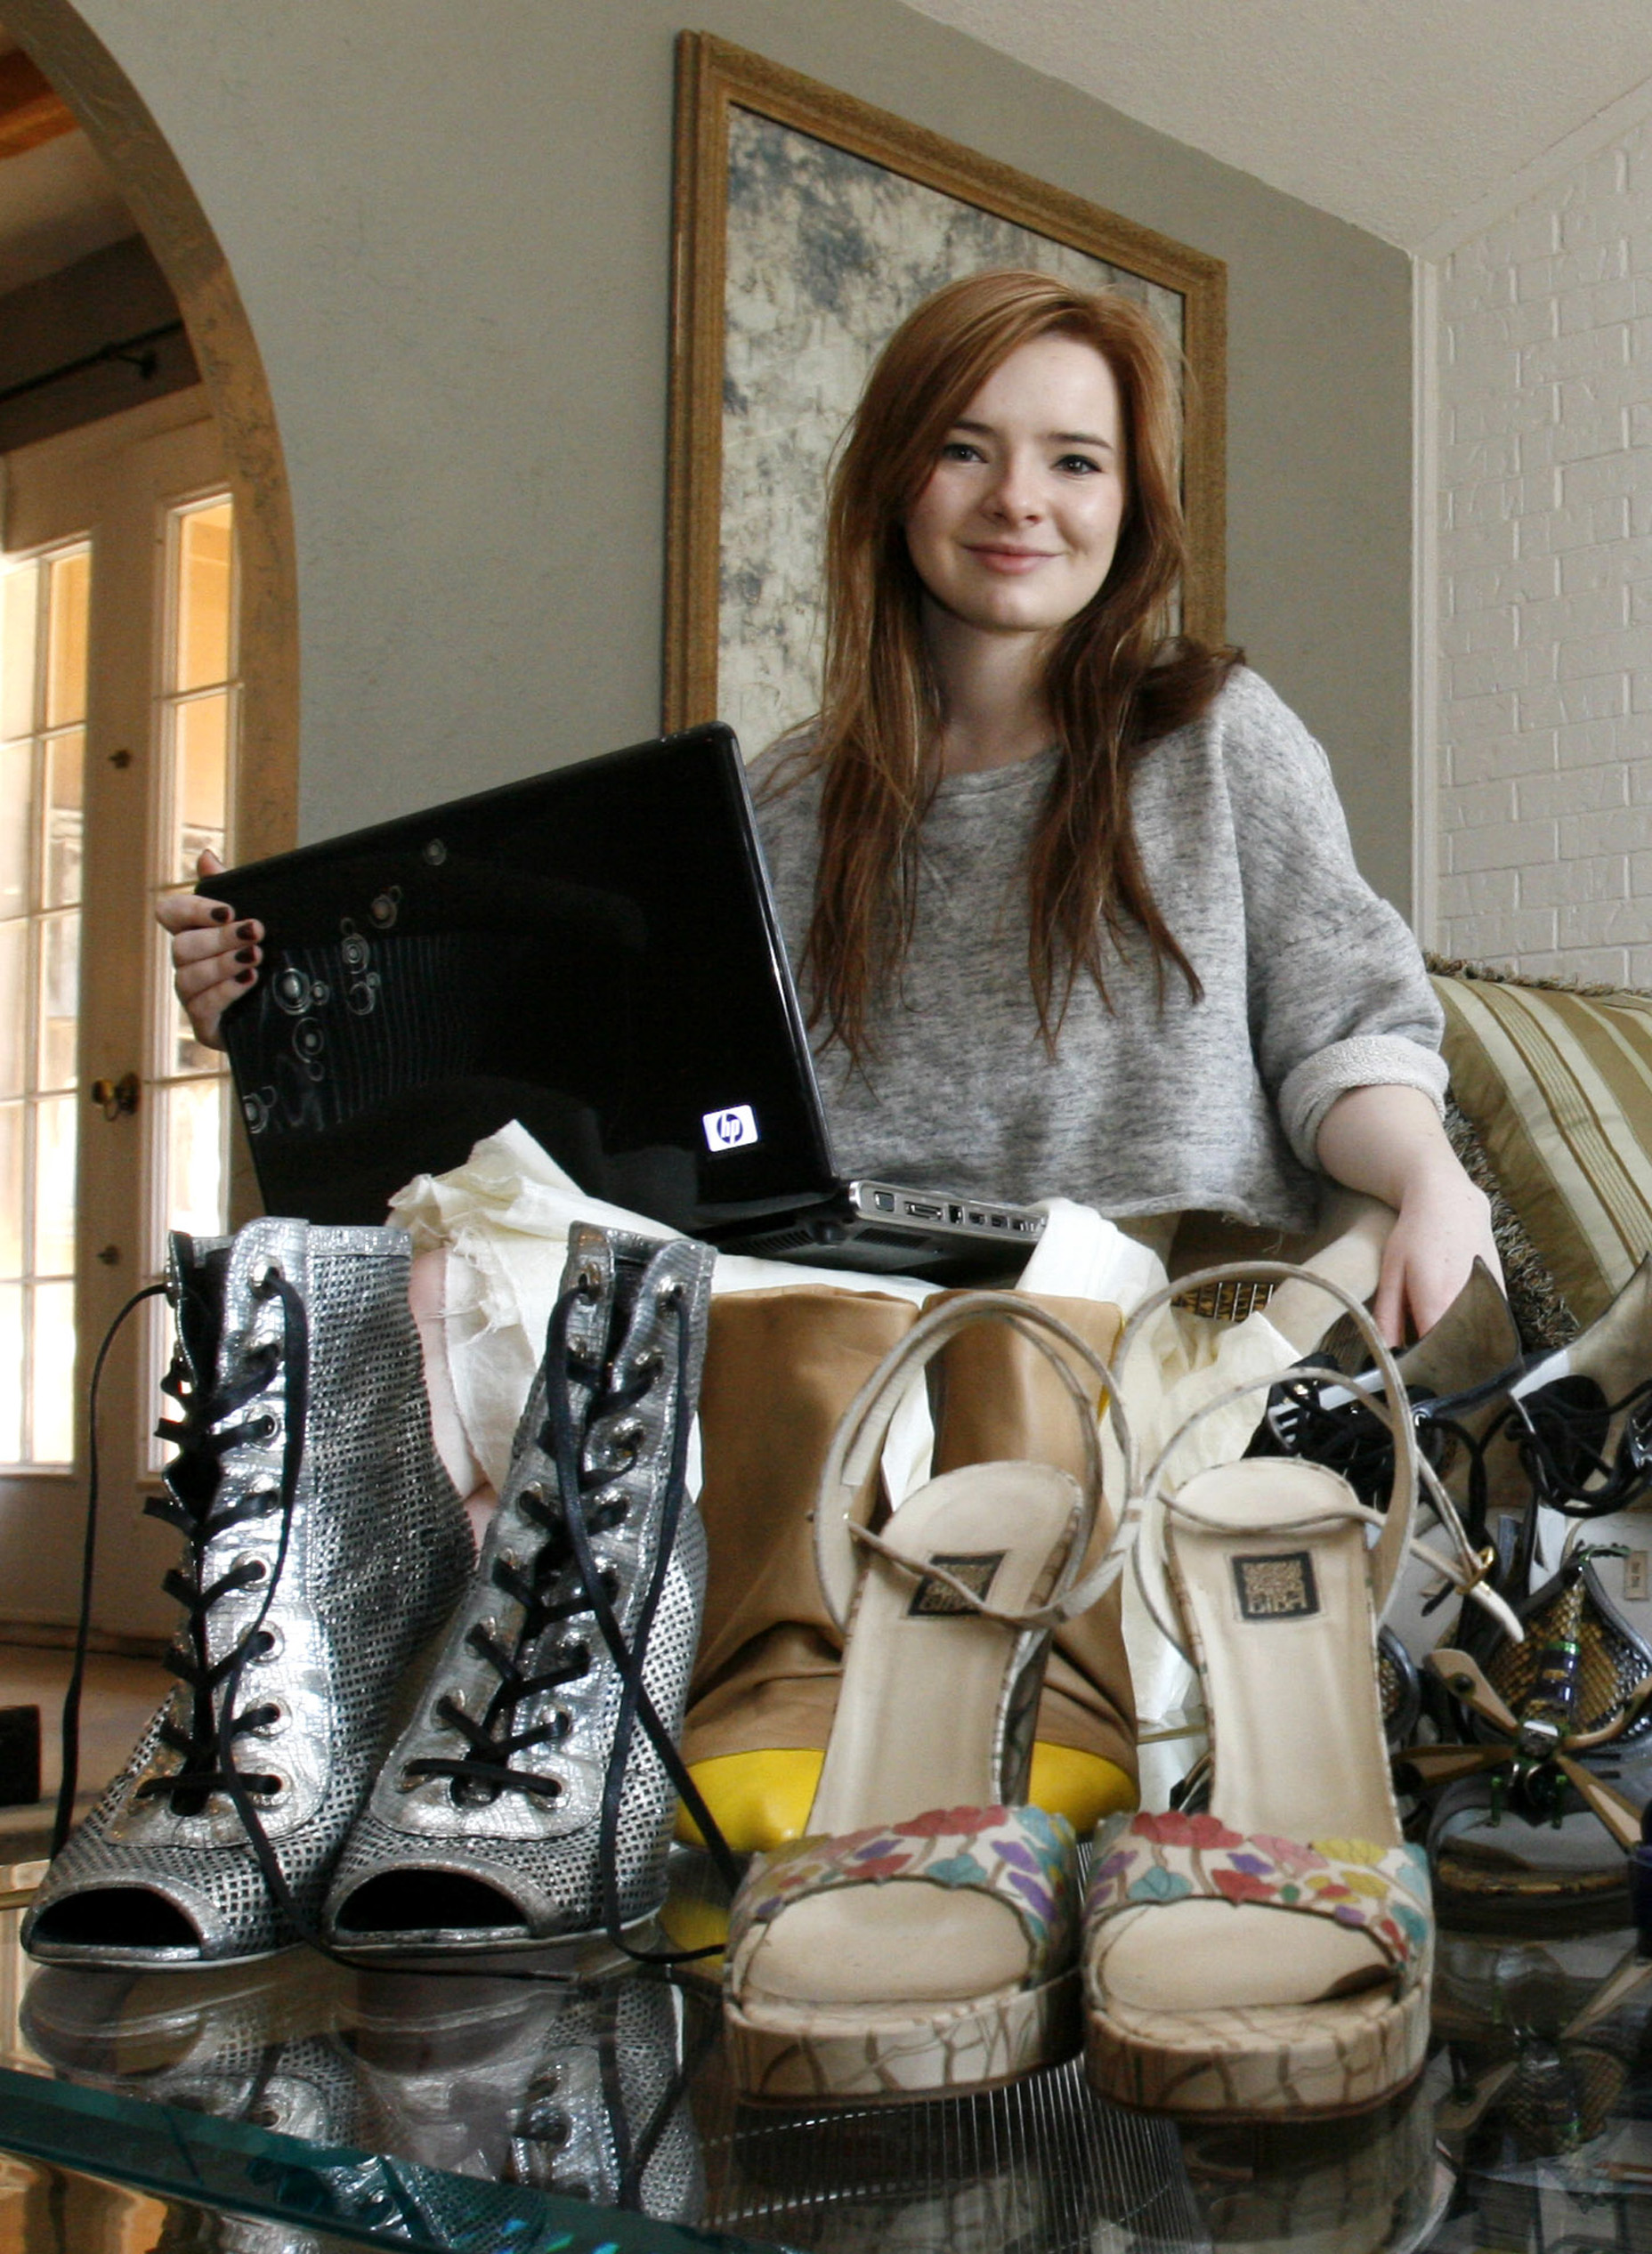 Jane Aldridge, 18, a fashion blogger on her site called 'Sea of Shoes', poses at her home in Trophy Club, Texas in this photo taken Feb. 9.